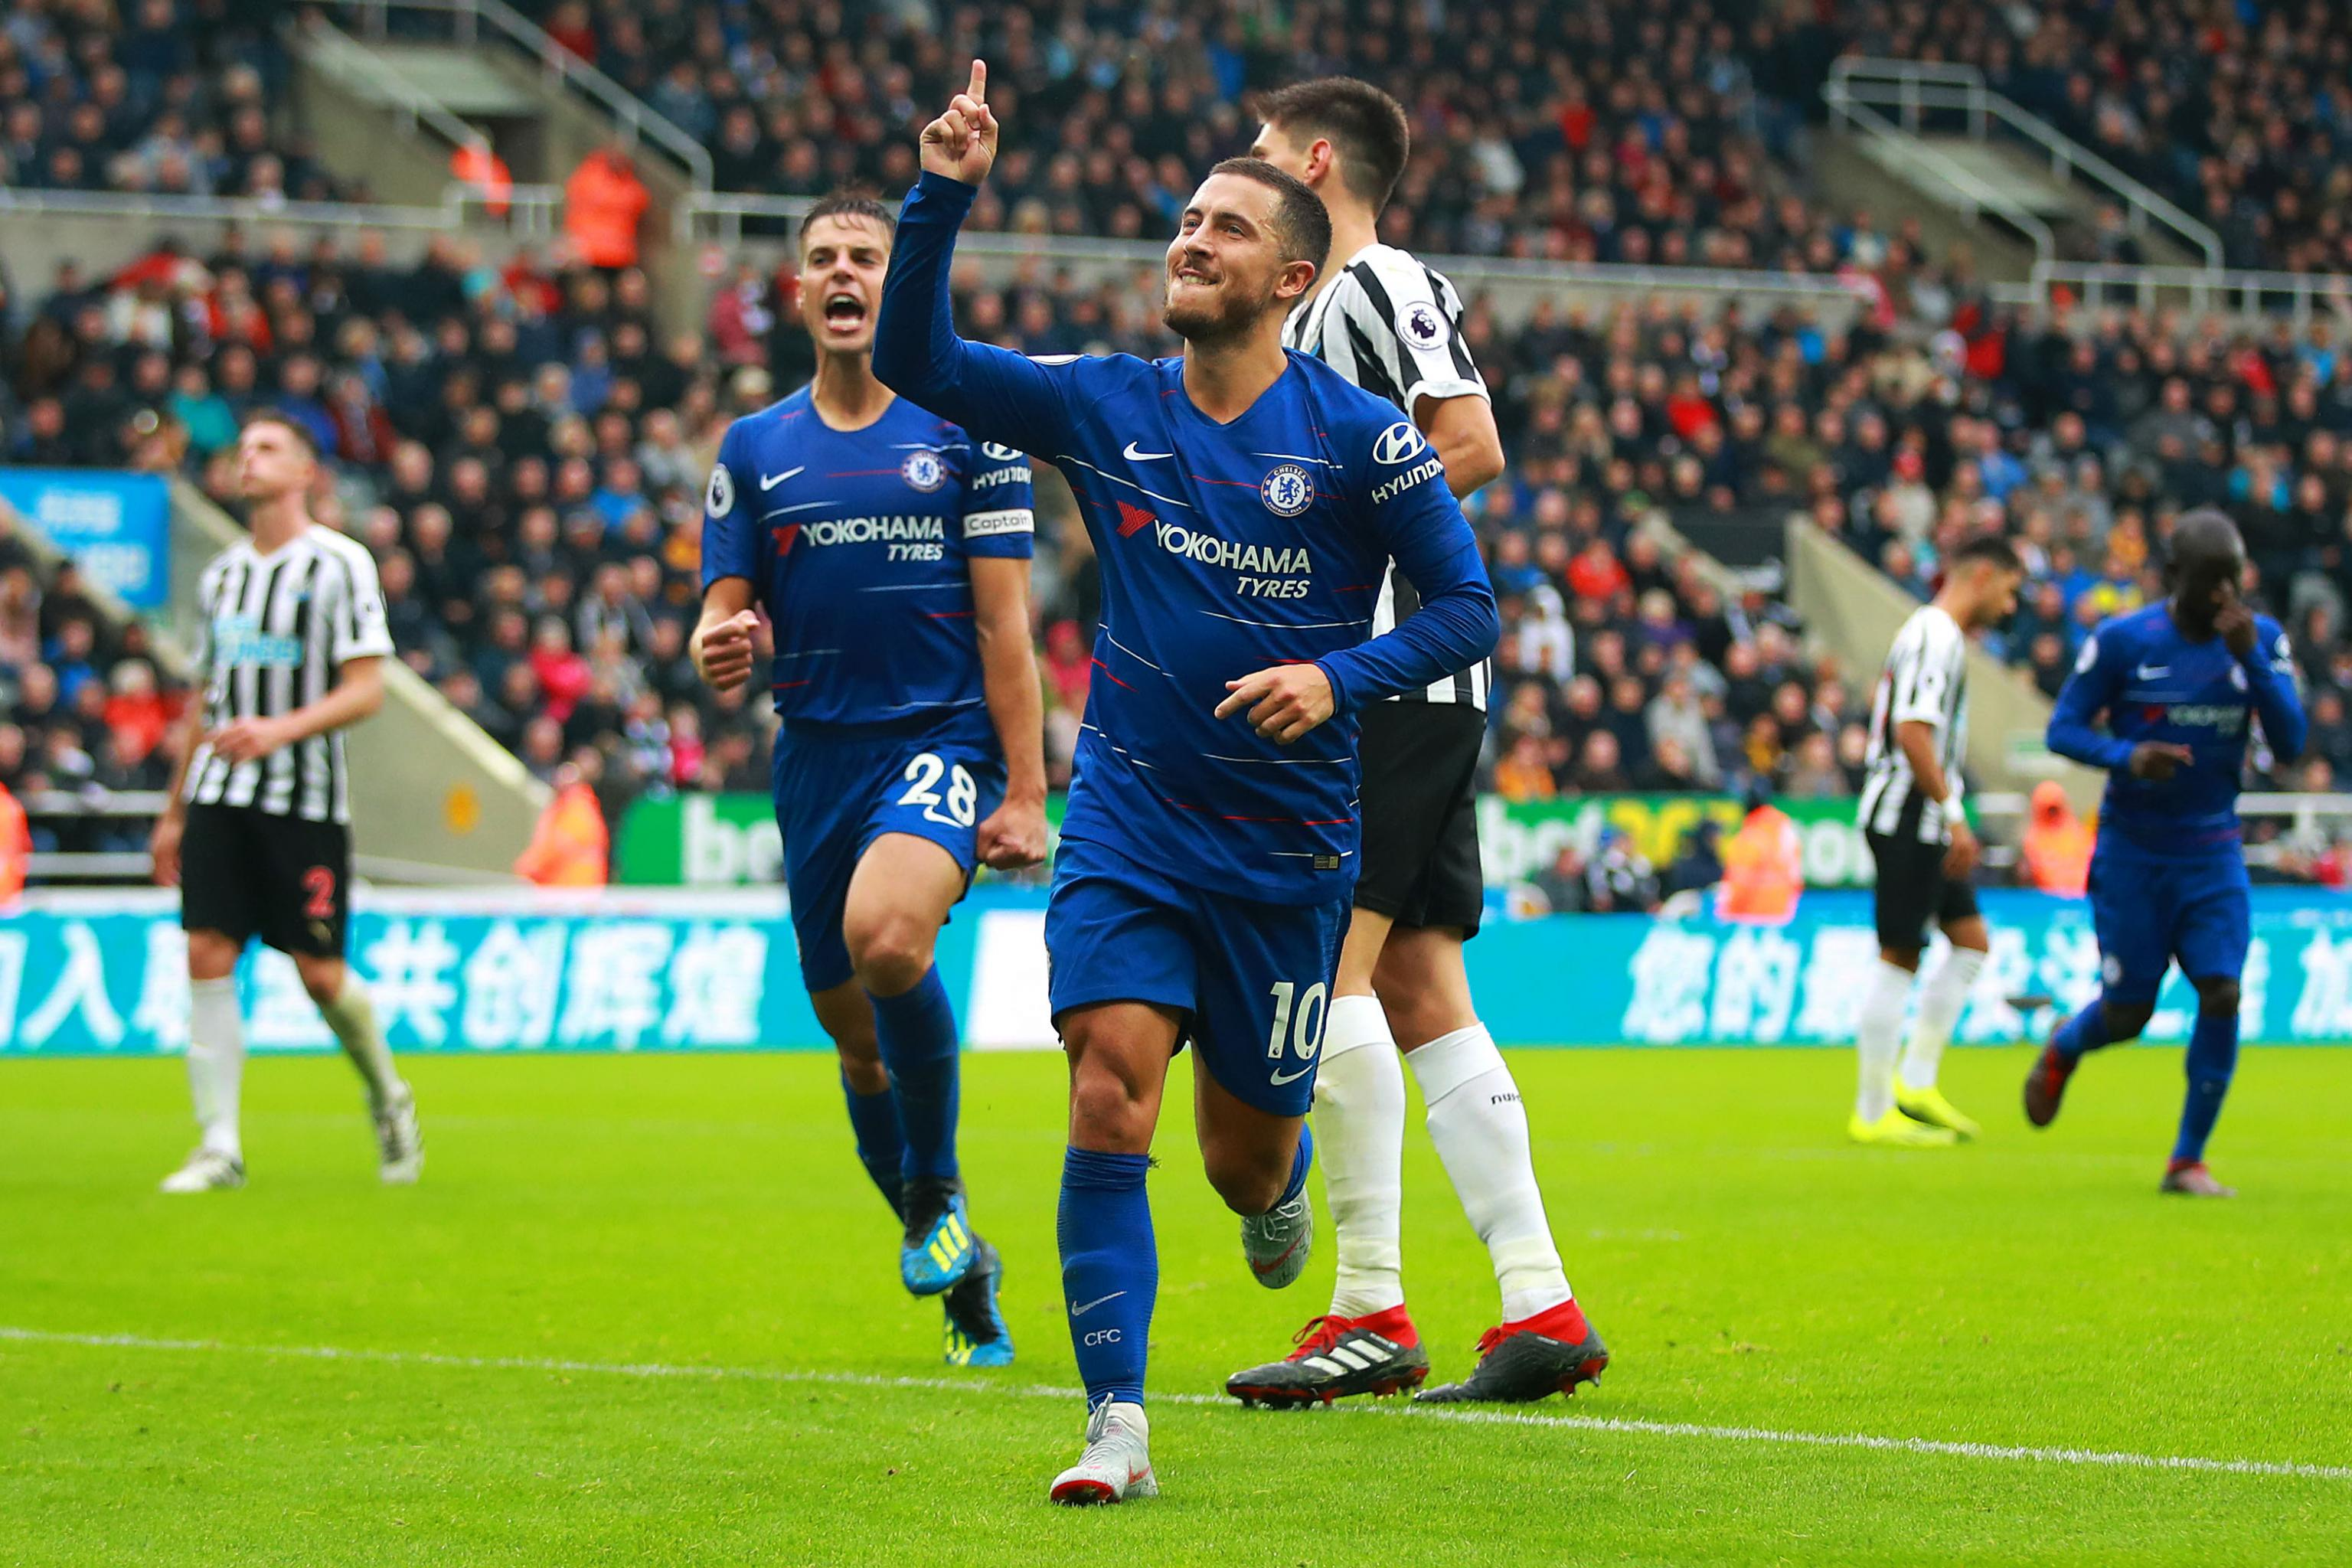 Premier League Results Week 3 Sunday S 2018 Epl Scores Top Scorers And Table Bleacher Report Latest News Videos And Highlights